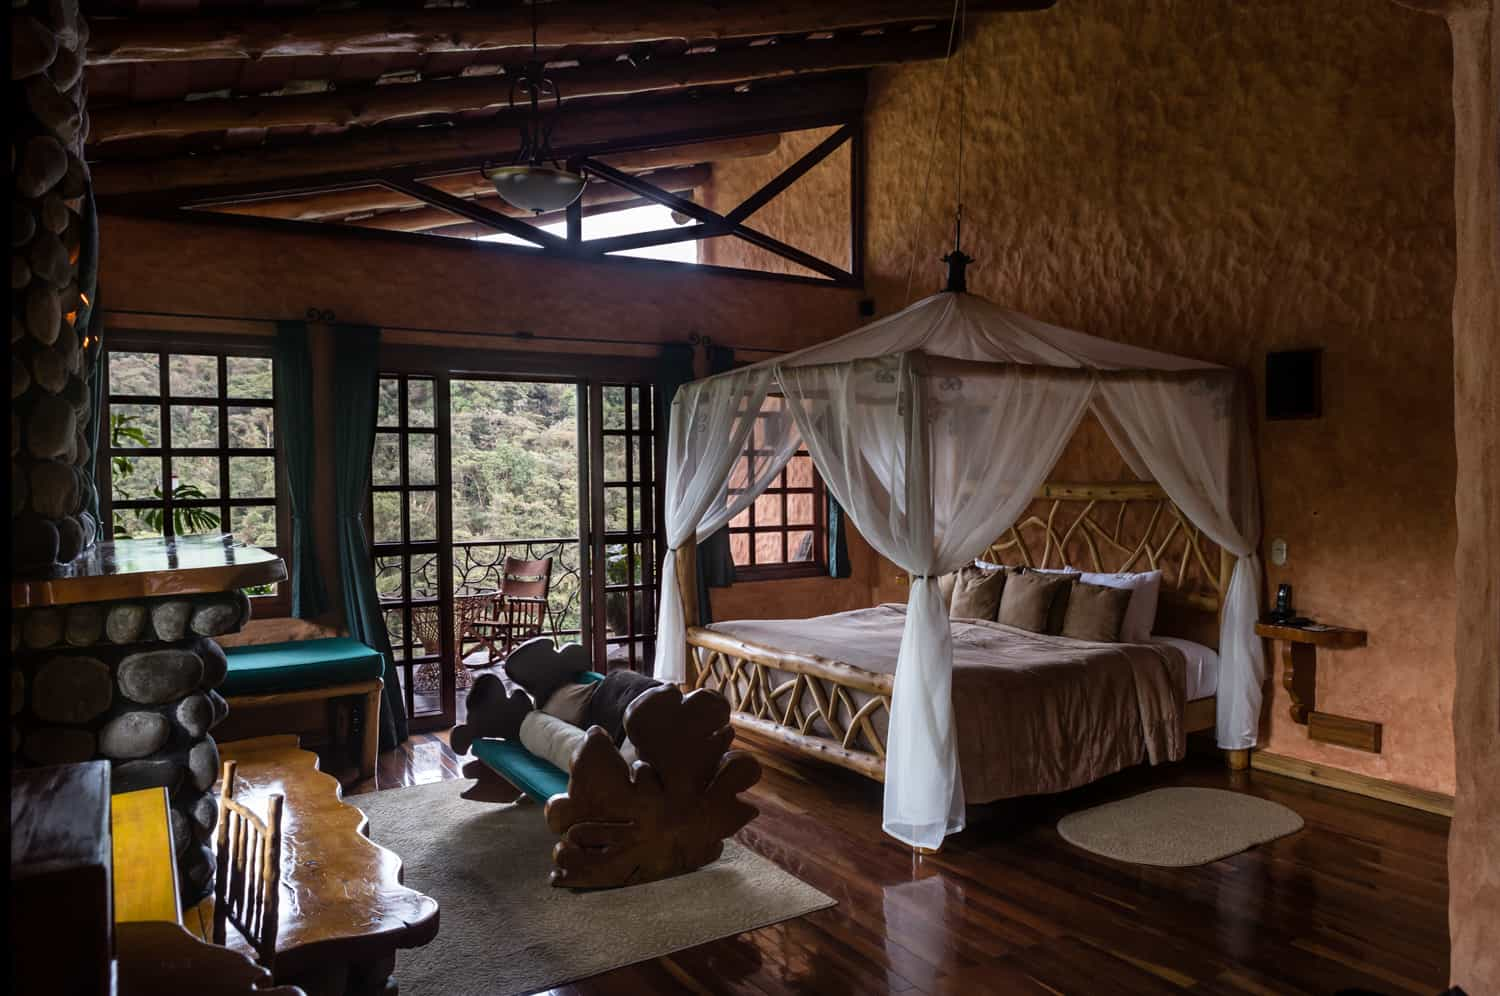 This is the beautiful Honeymoon Suite at Peace lodge with a great view of the cloud forest and Poas Volcano.